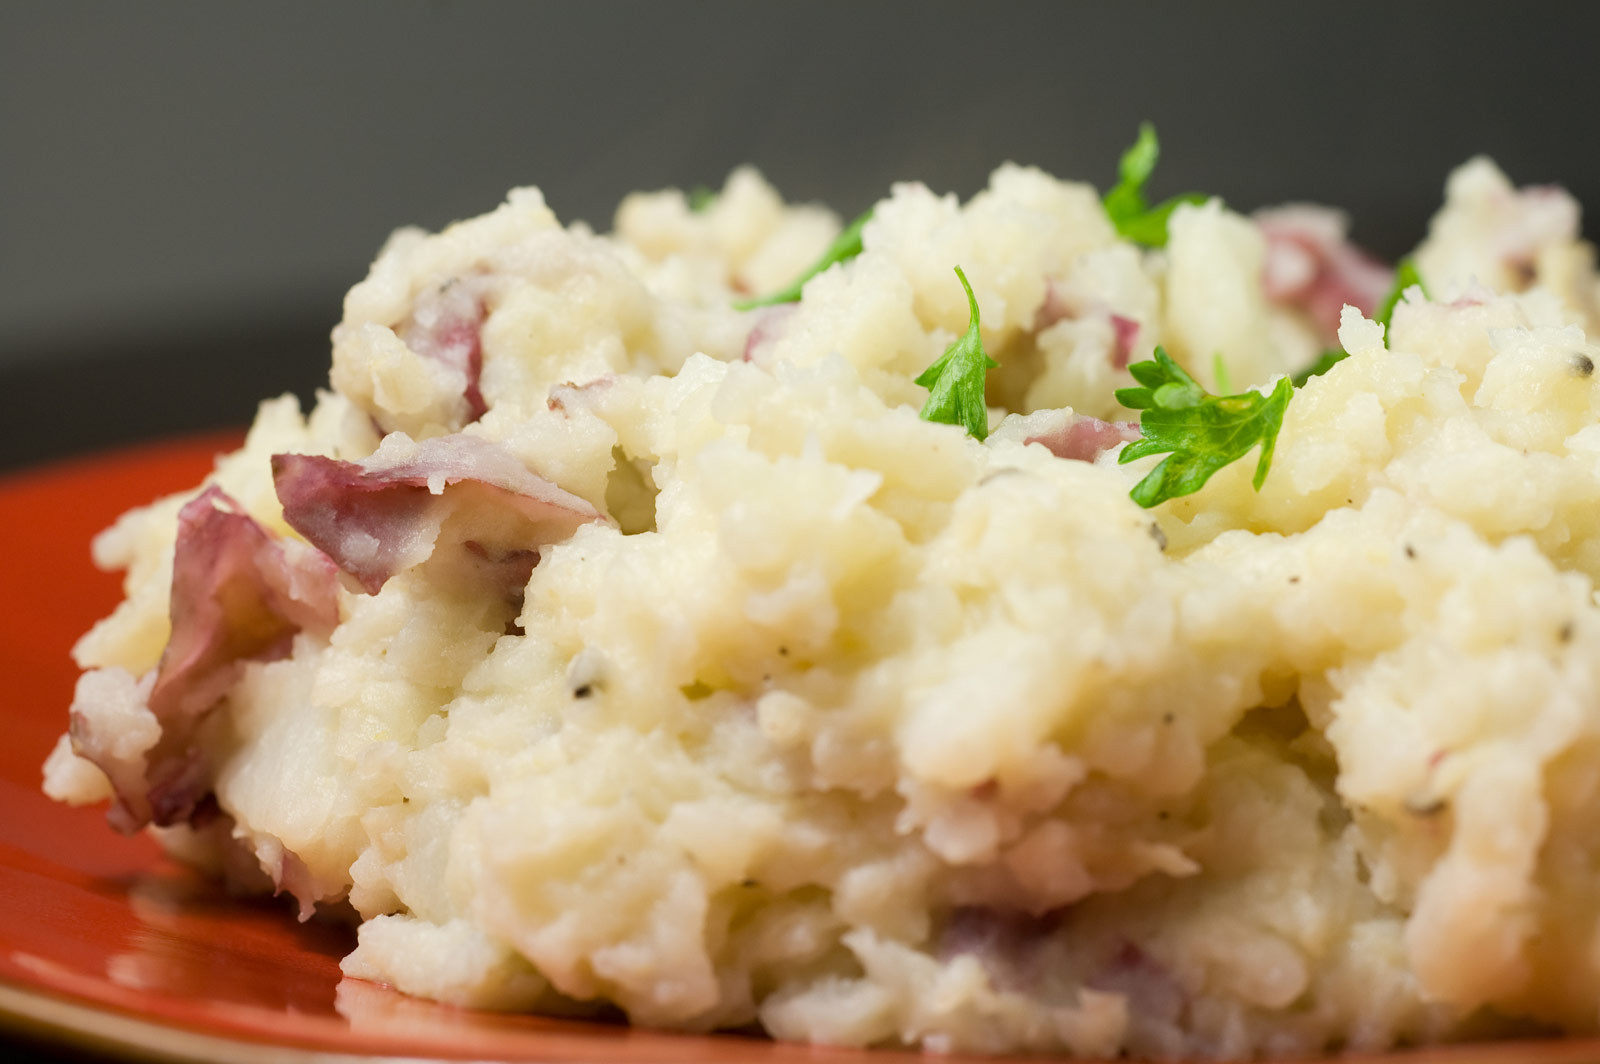 Mashed Potato Recipes With Skin  Sports 4 All Foundation Last Recipe for the Month of